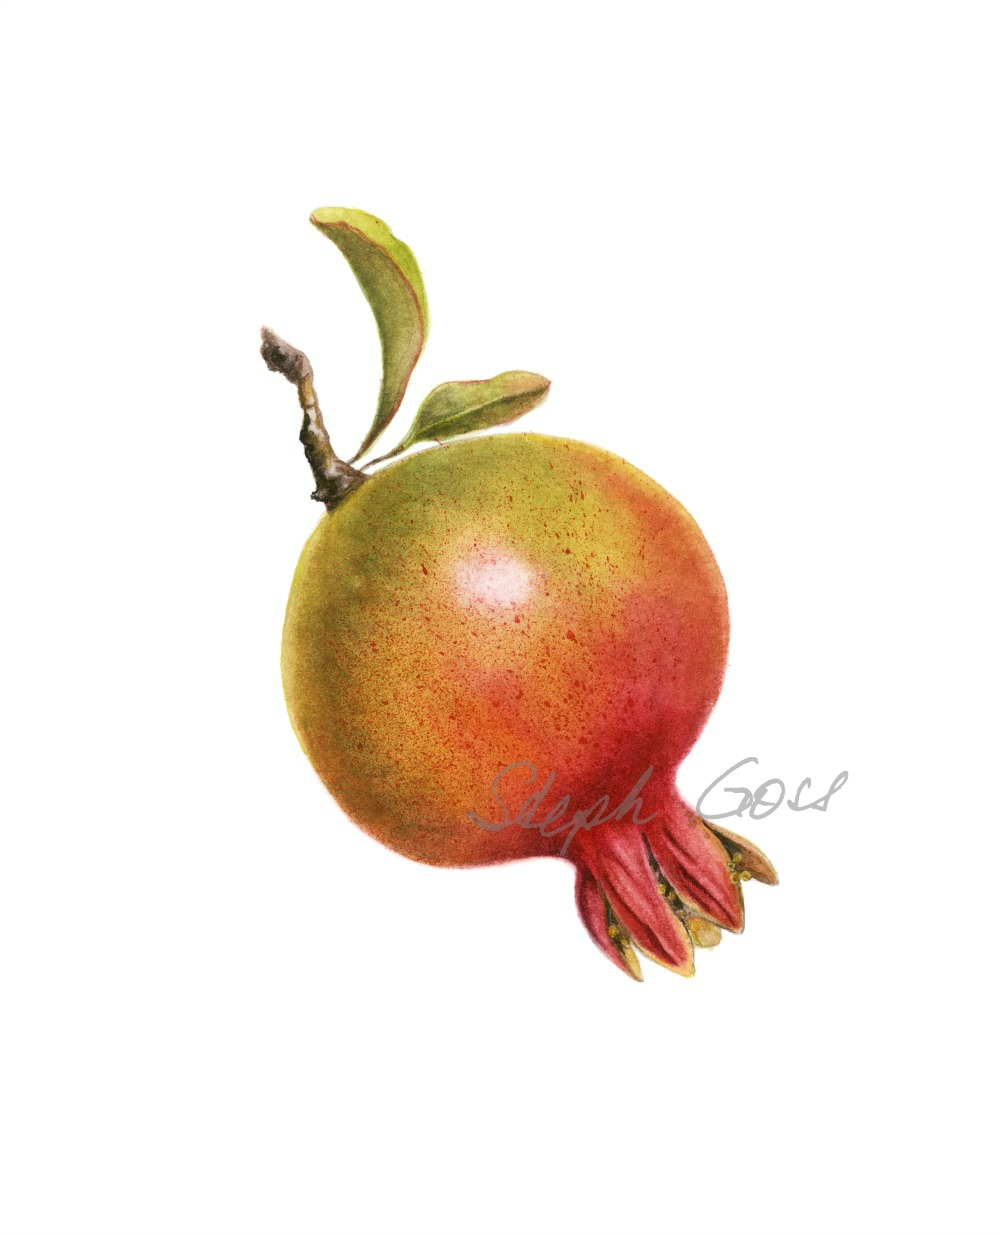 1. Pomegranate